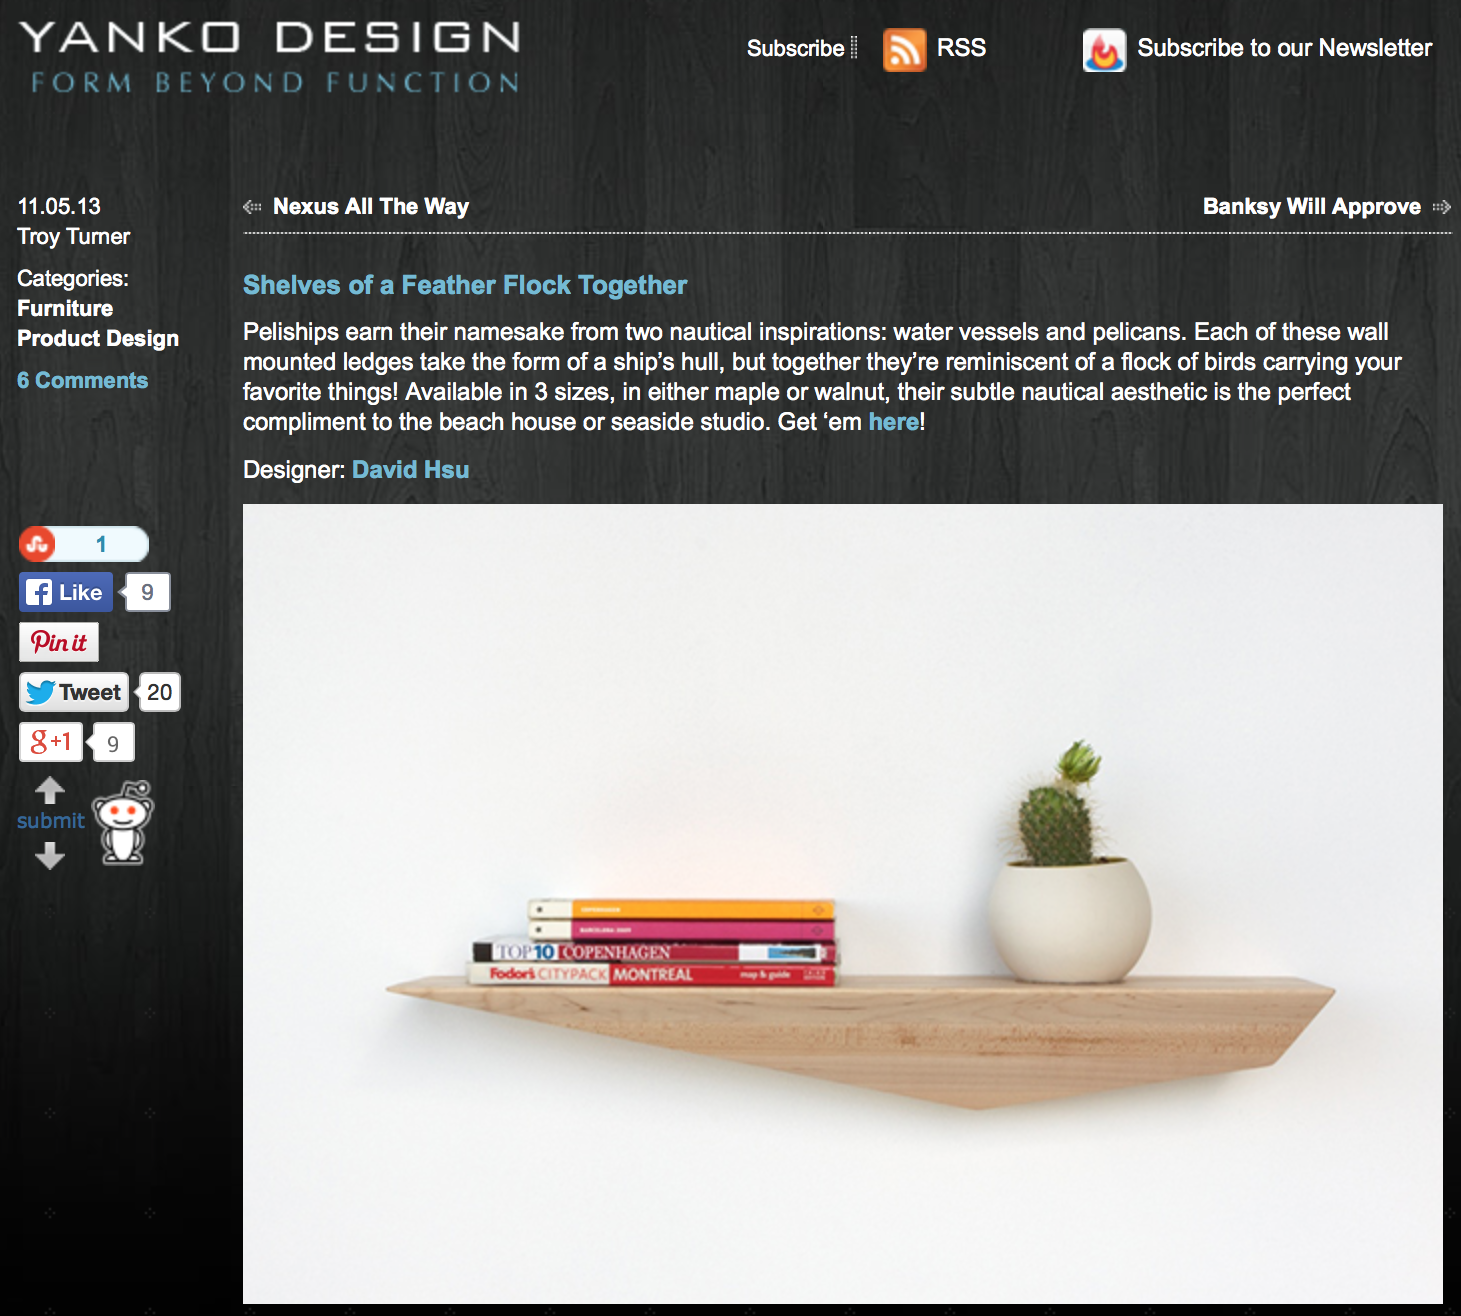 Peliships featured on Yanko Design